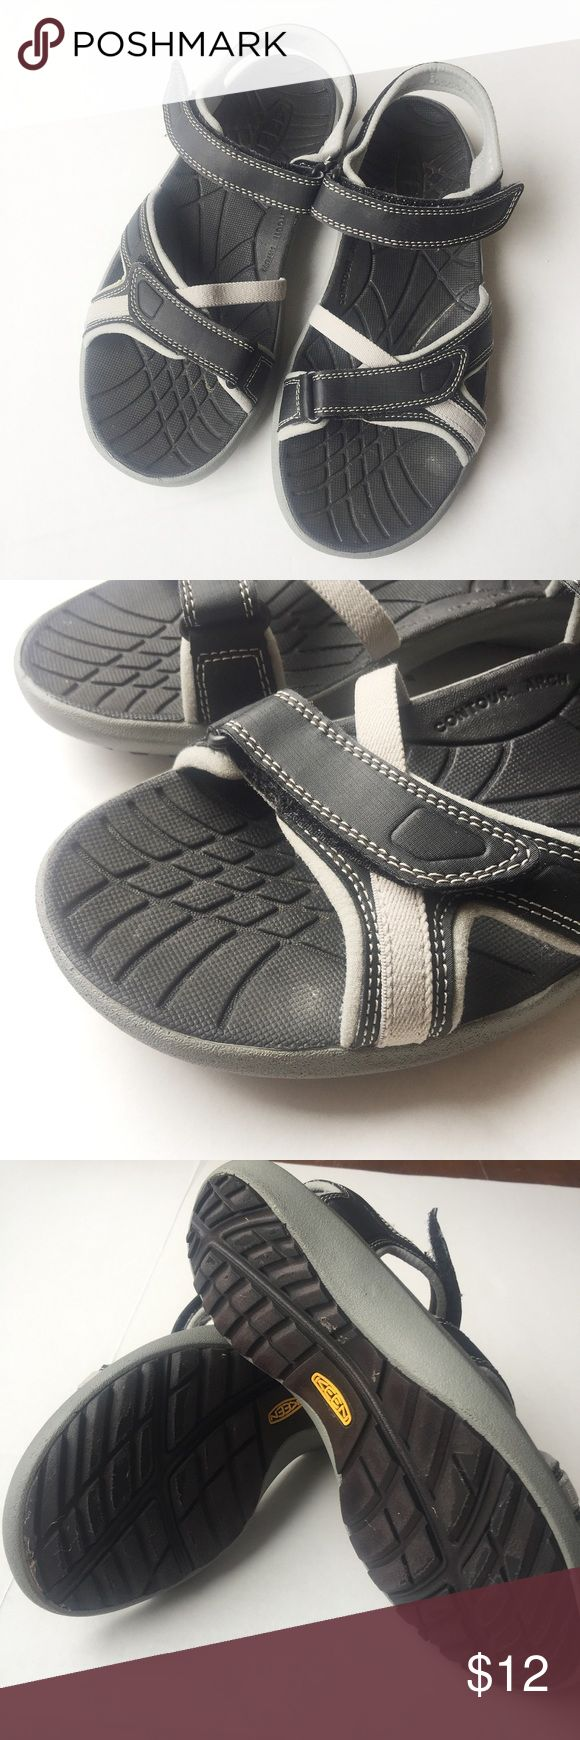 Keen Grey and Black Velcro Sandals size 9 Keen grey and black Velcro sandals with contour arch. Some fading but in good pre owned condition. Women's size 9 or men's size 7 Keen Shoes Sandals